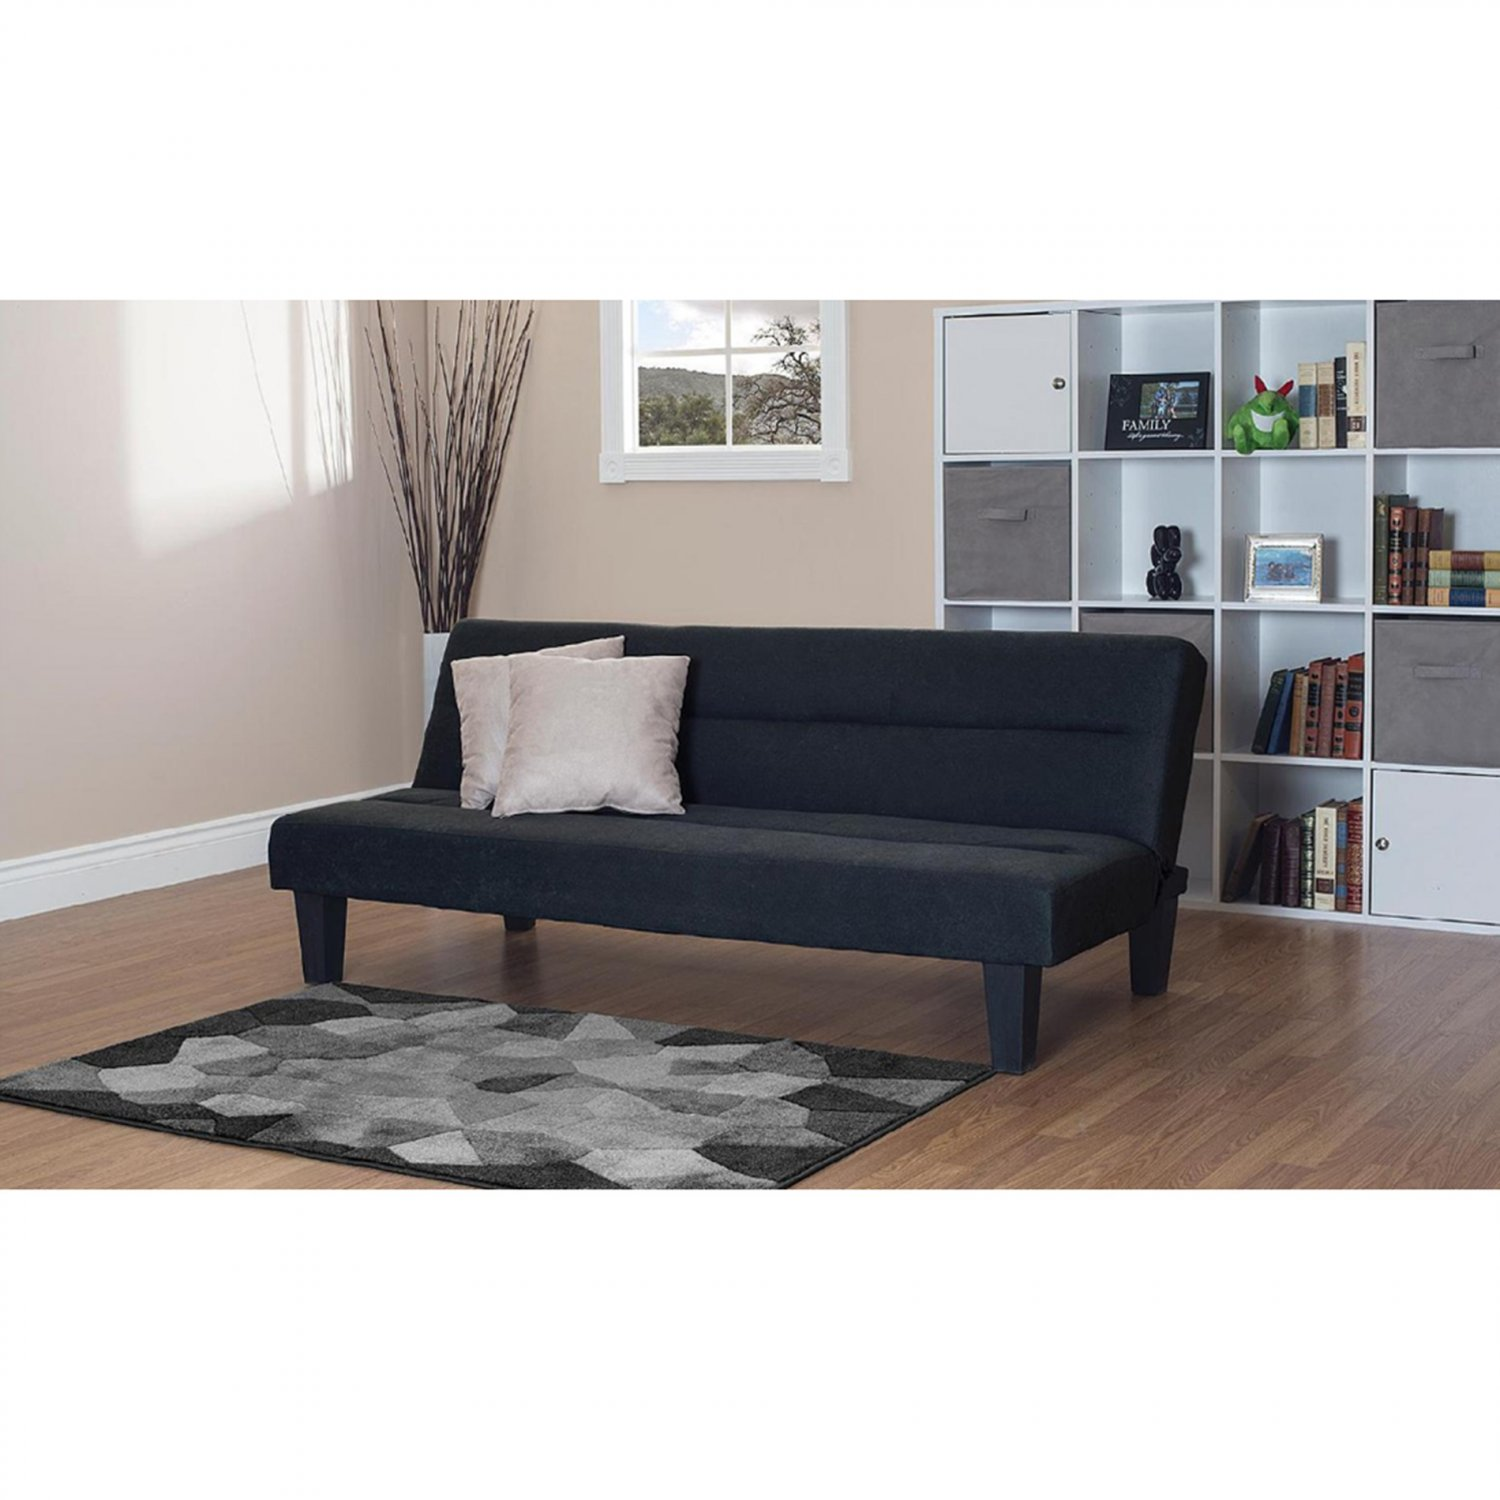 Convertible Sofa Bed Futon Couch Sleeper Lounge Ship US Country Only AS 164